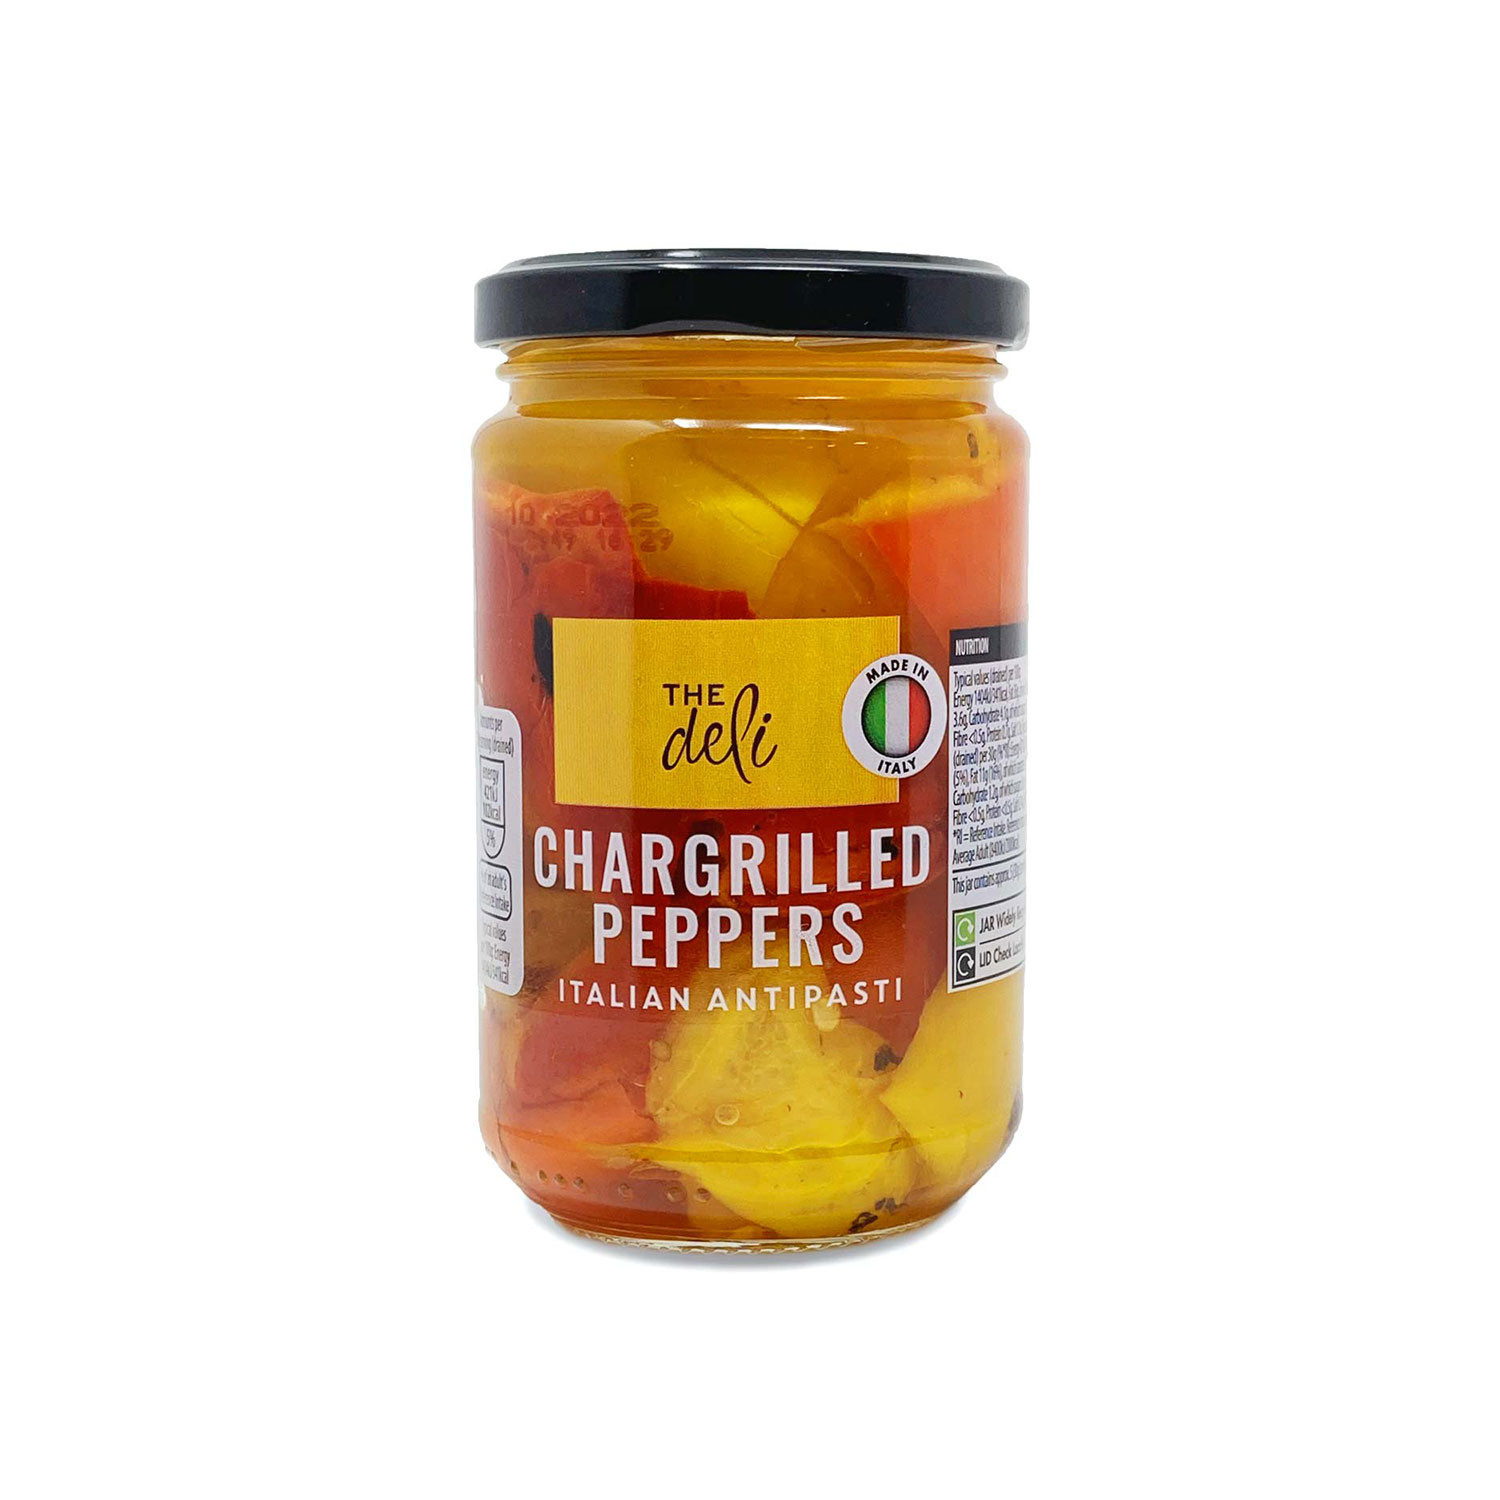 Chargrilled Peppers